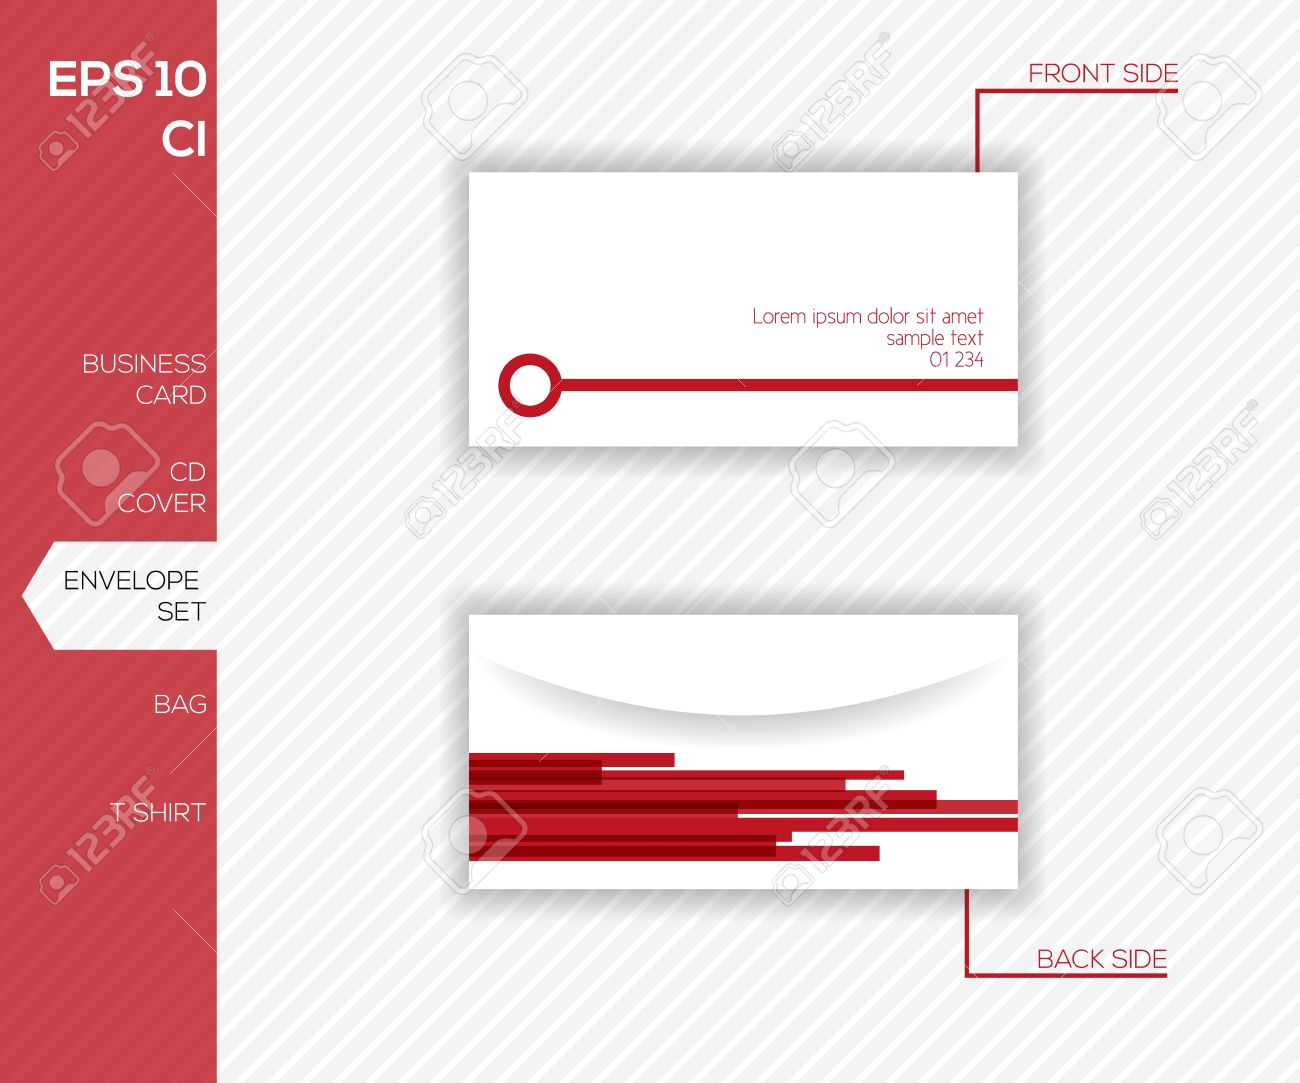 Abstract Envelope Design Template Royalty Free Cliparts, Vectors